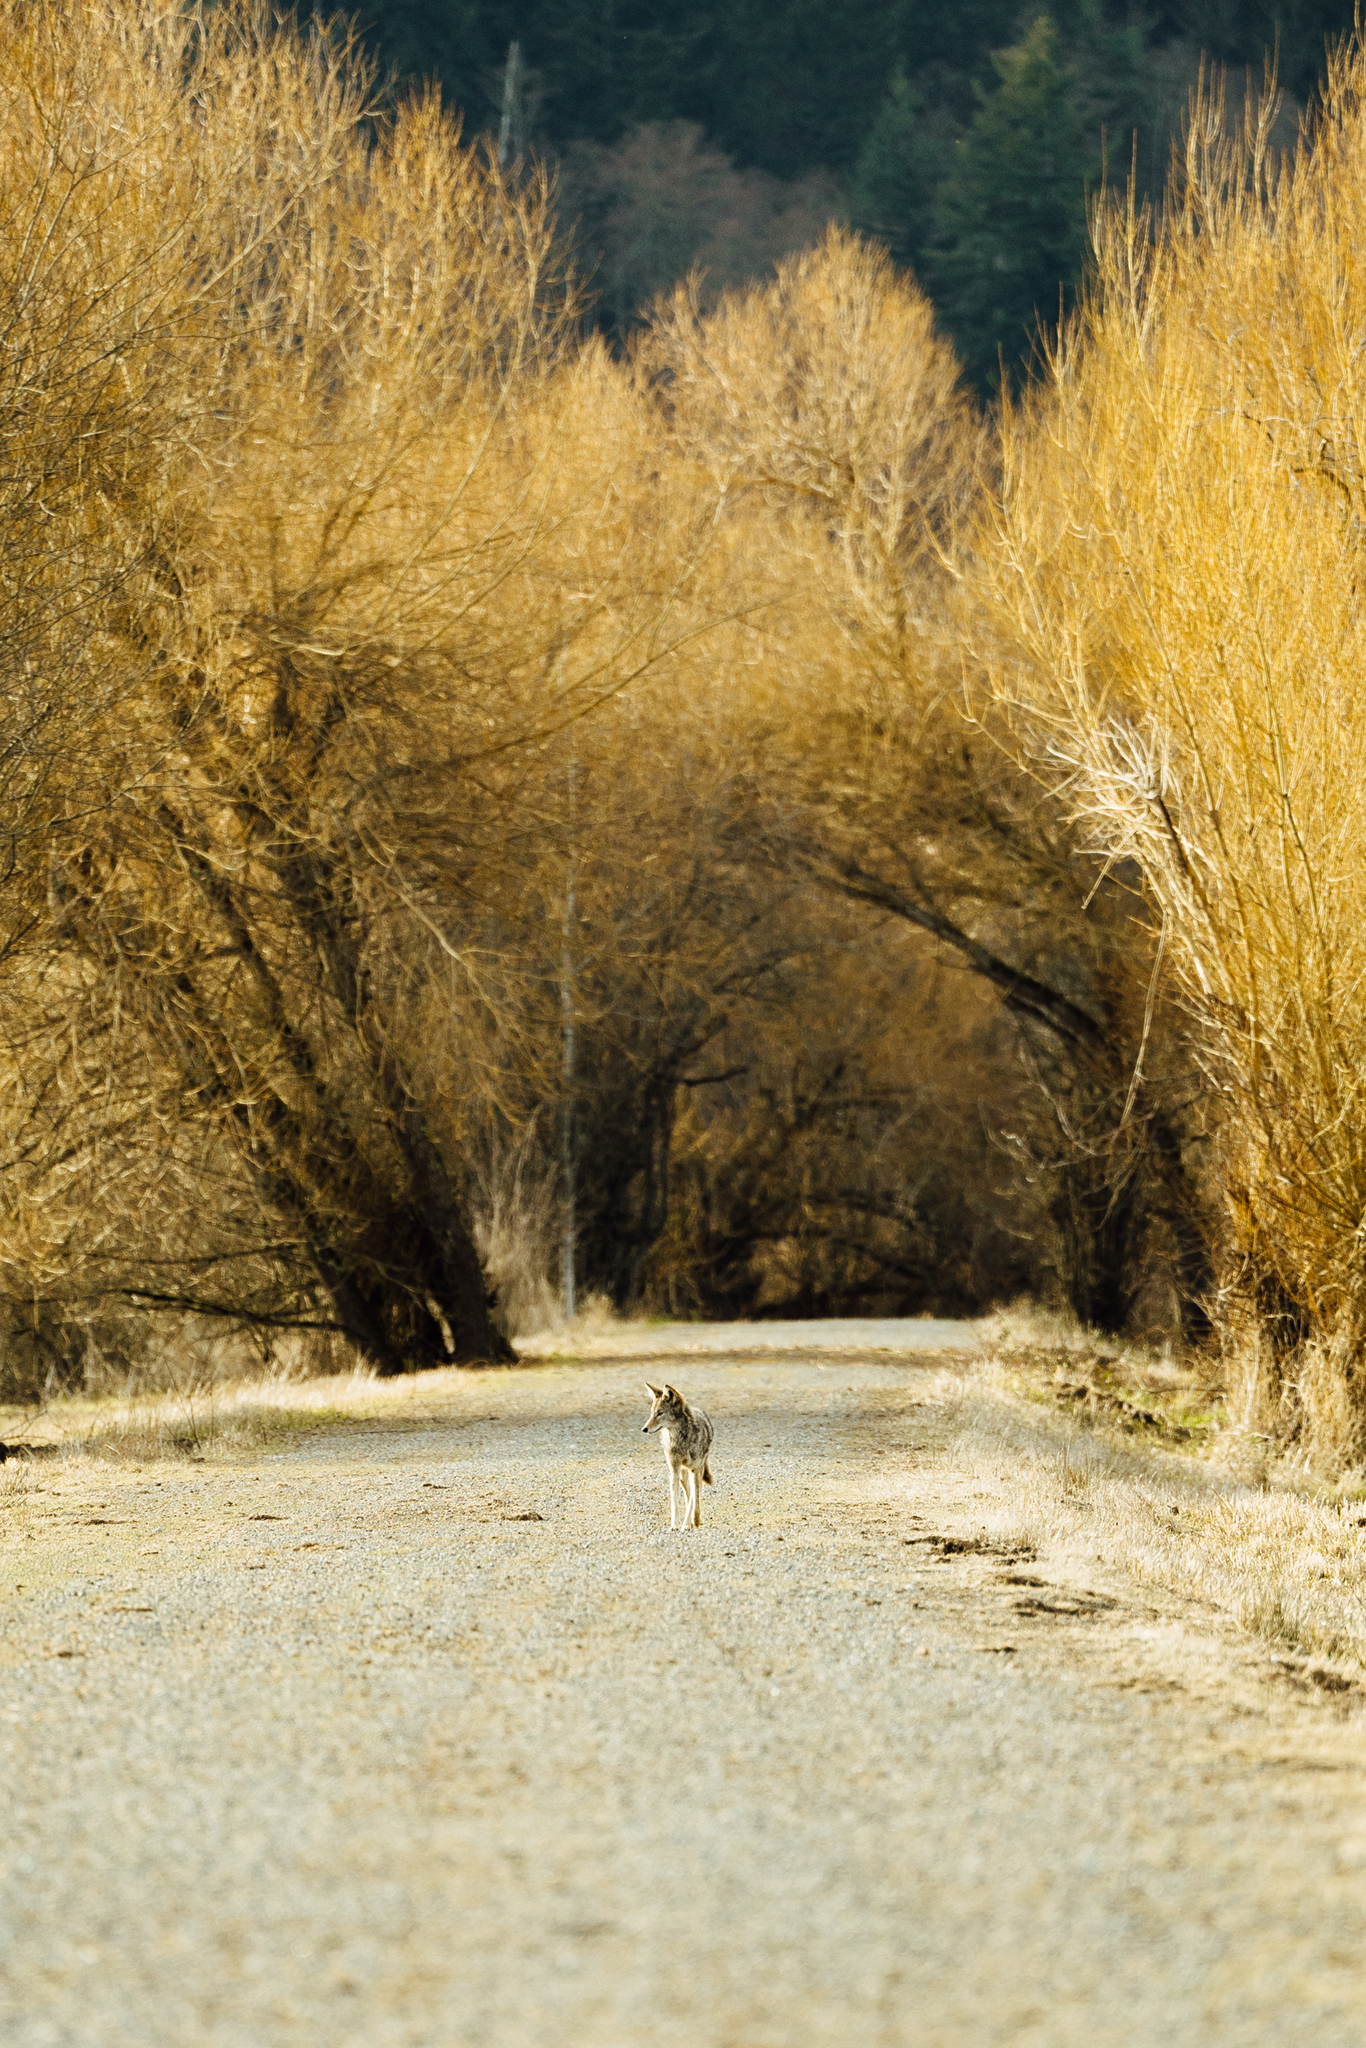 A wild coyote walking down a trail at the Nisqually National Wildlife Refuge